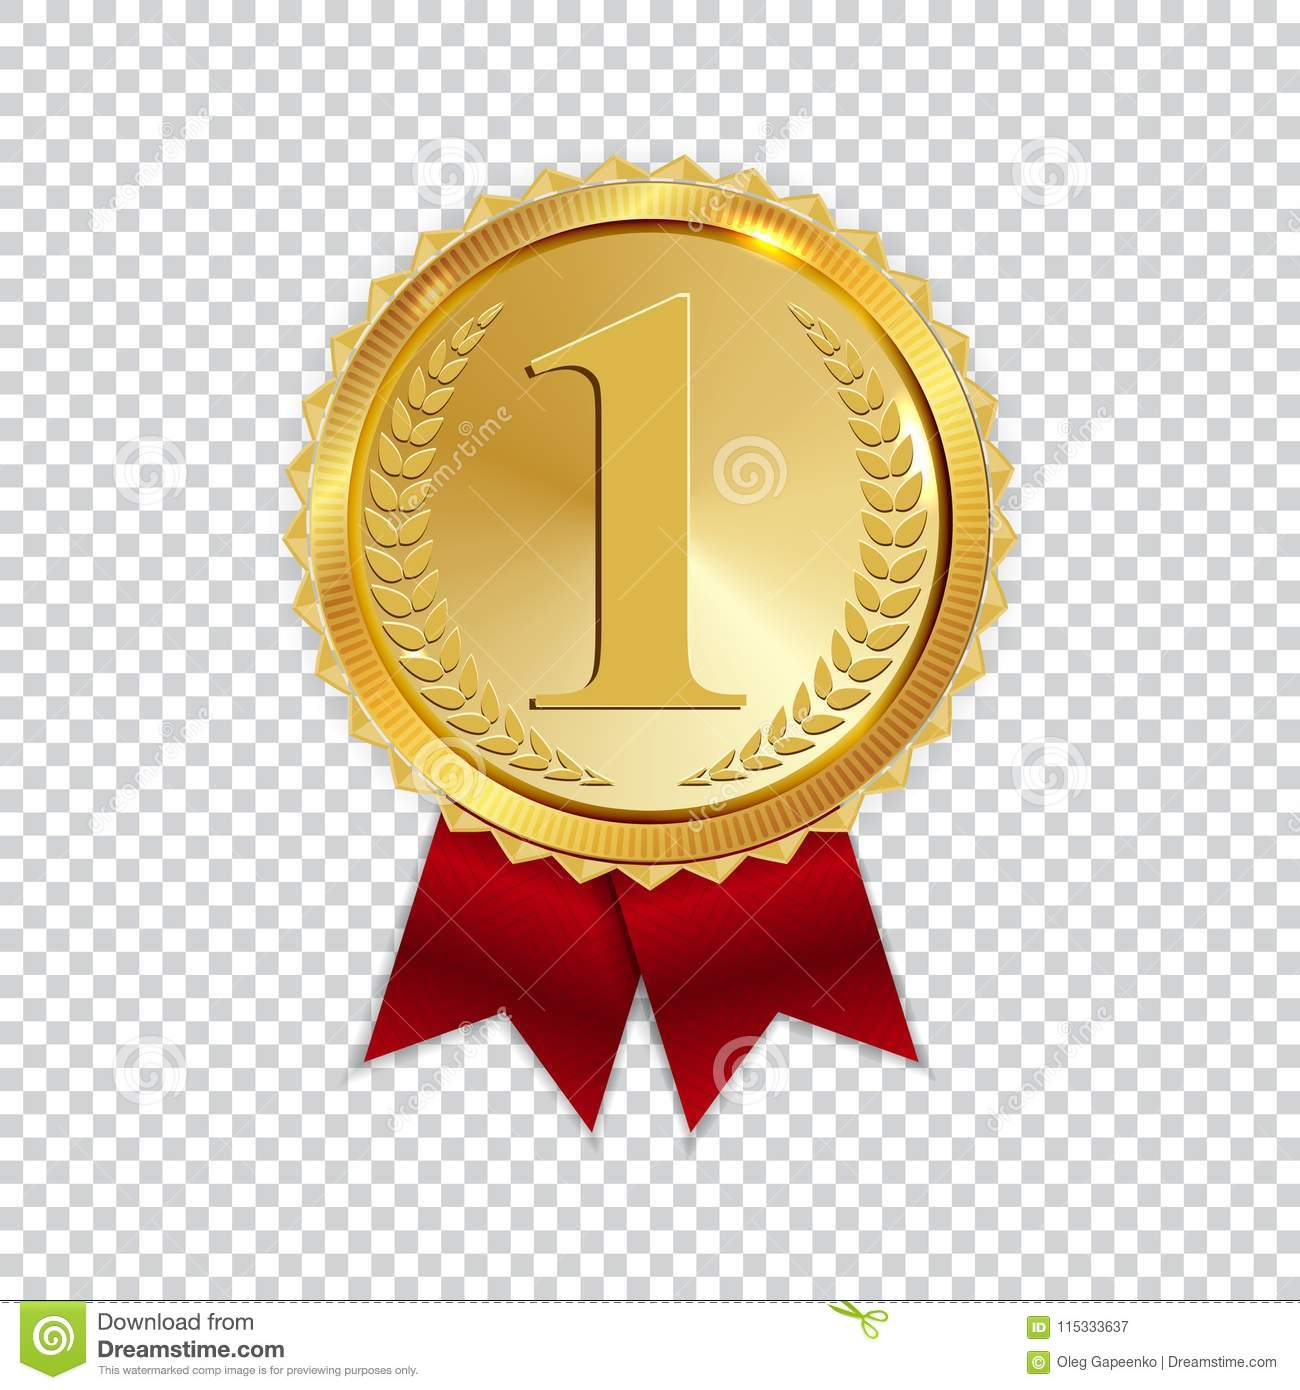 hight resolution of champion art golden medal with red ribbon l icon sign first place isolated on transparent background